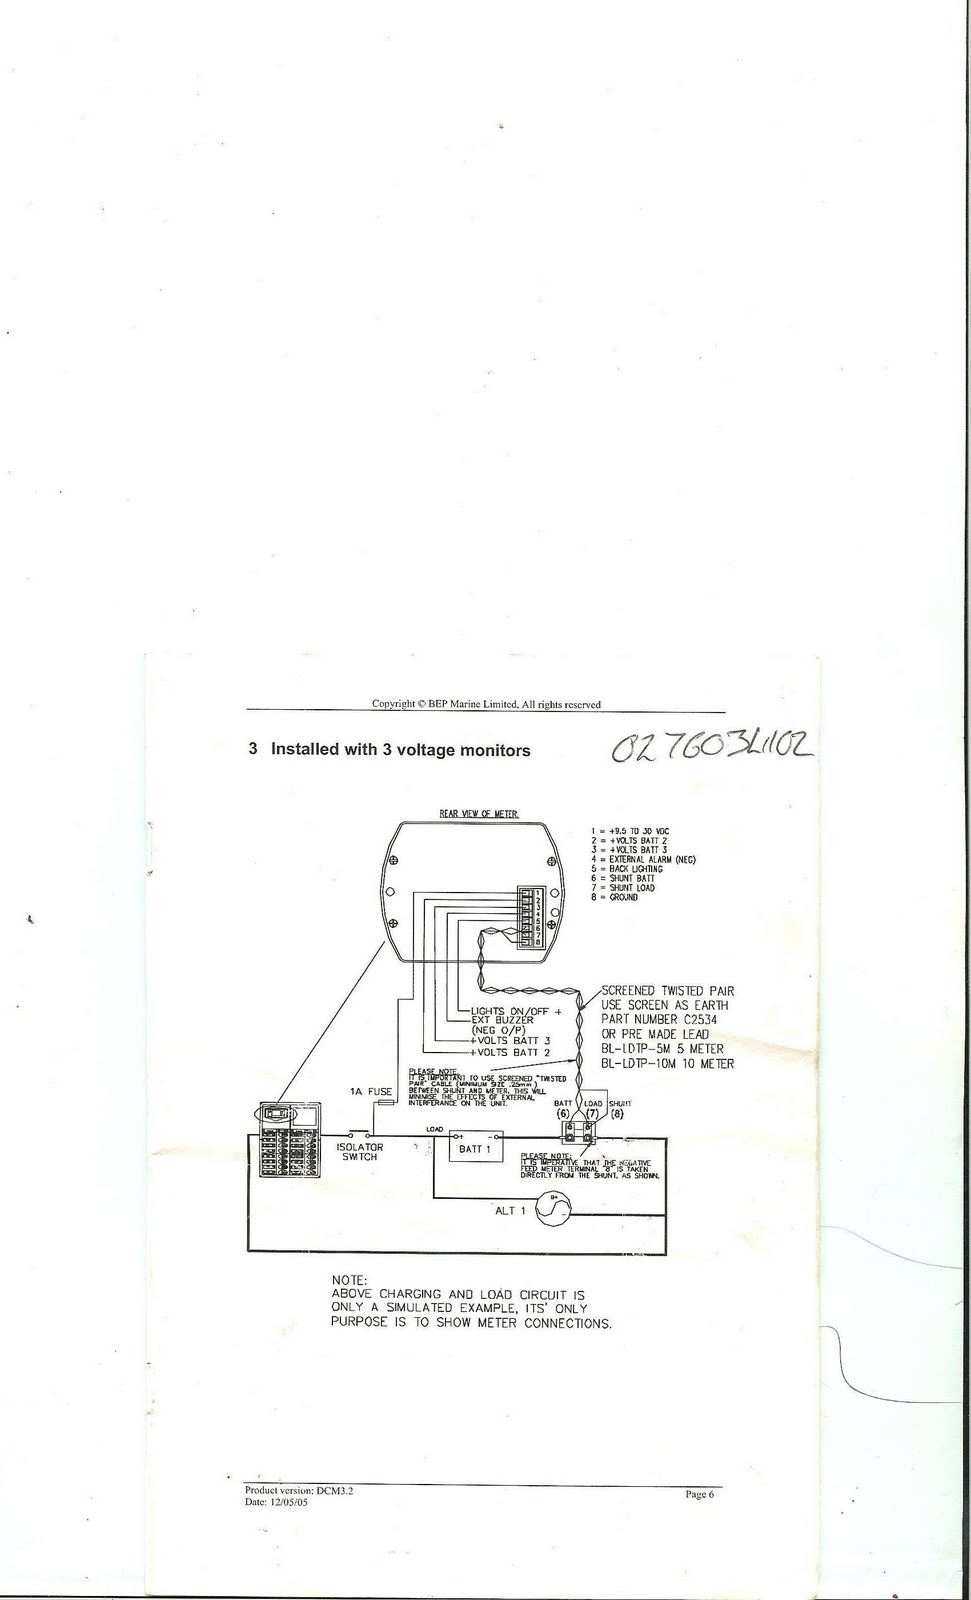 Bep wiring diagram library